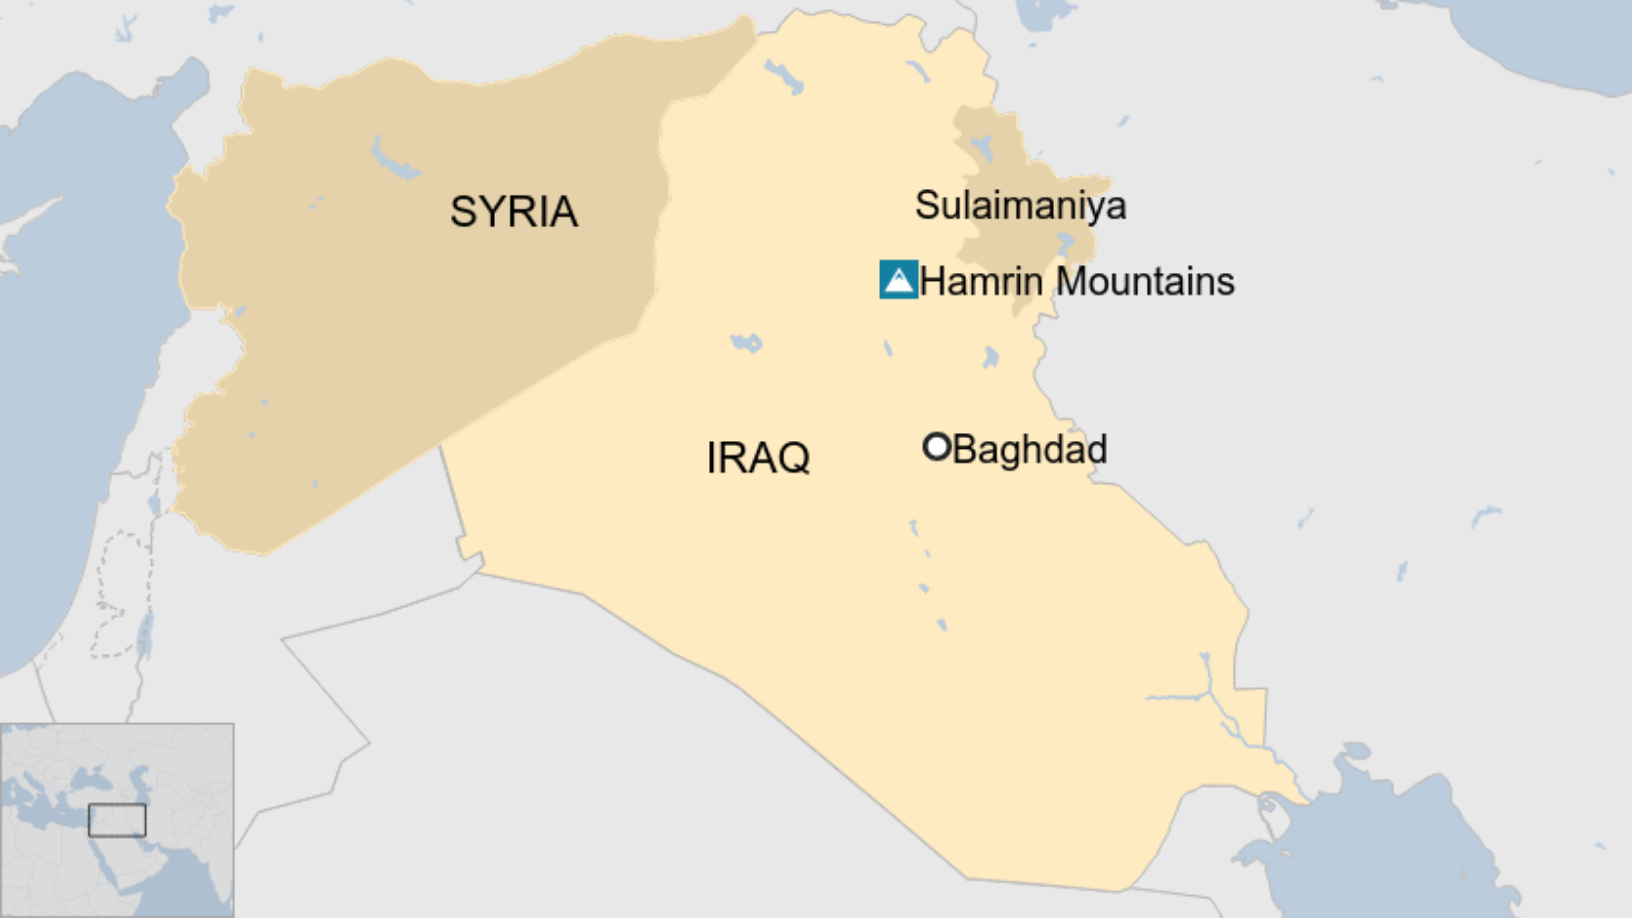 Map: Map of Iraq and Syria